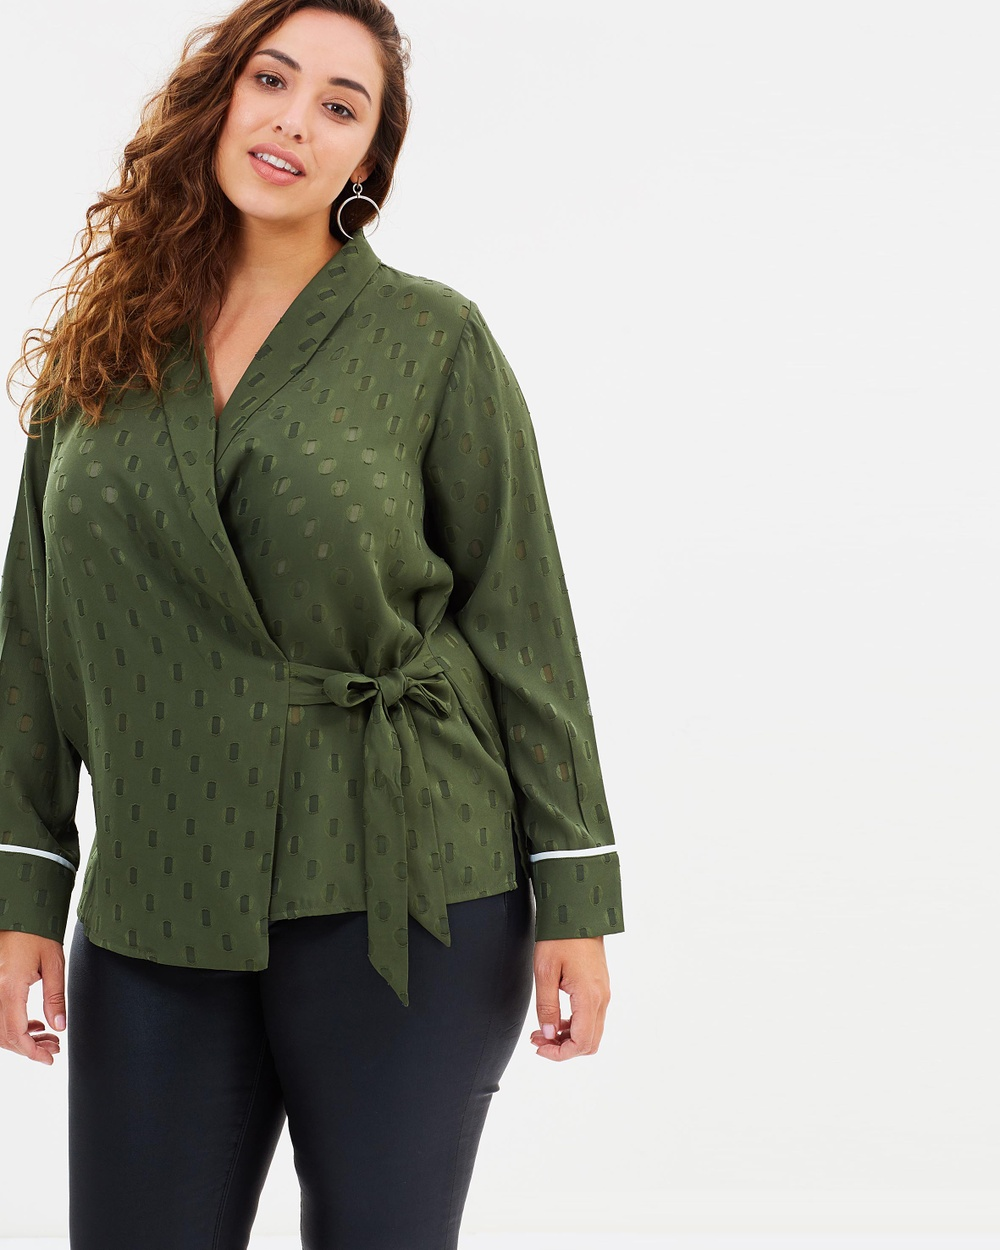 Atmos & Here Curvy ICONIC EXCLUSIVE Cara Blouse Tops Khaki ICONIC EXCLUSIVE Cara Blouse